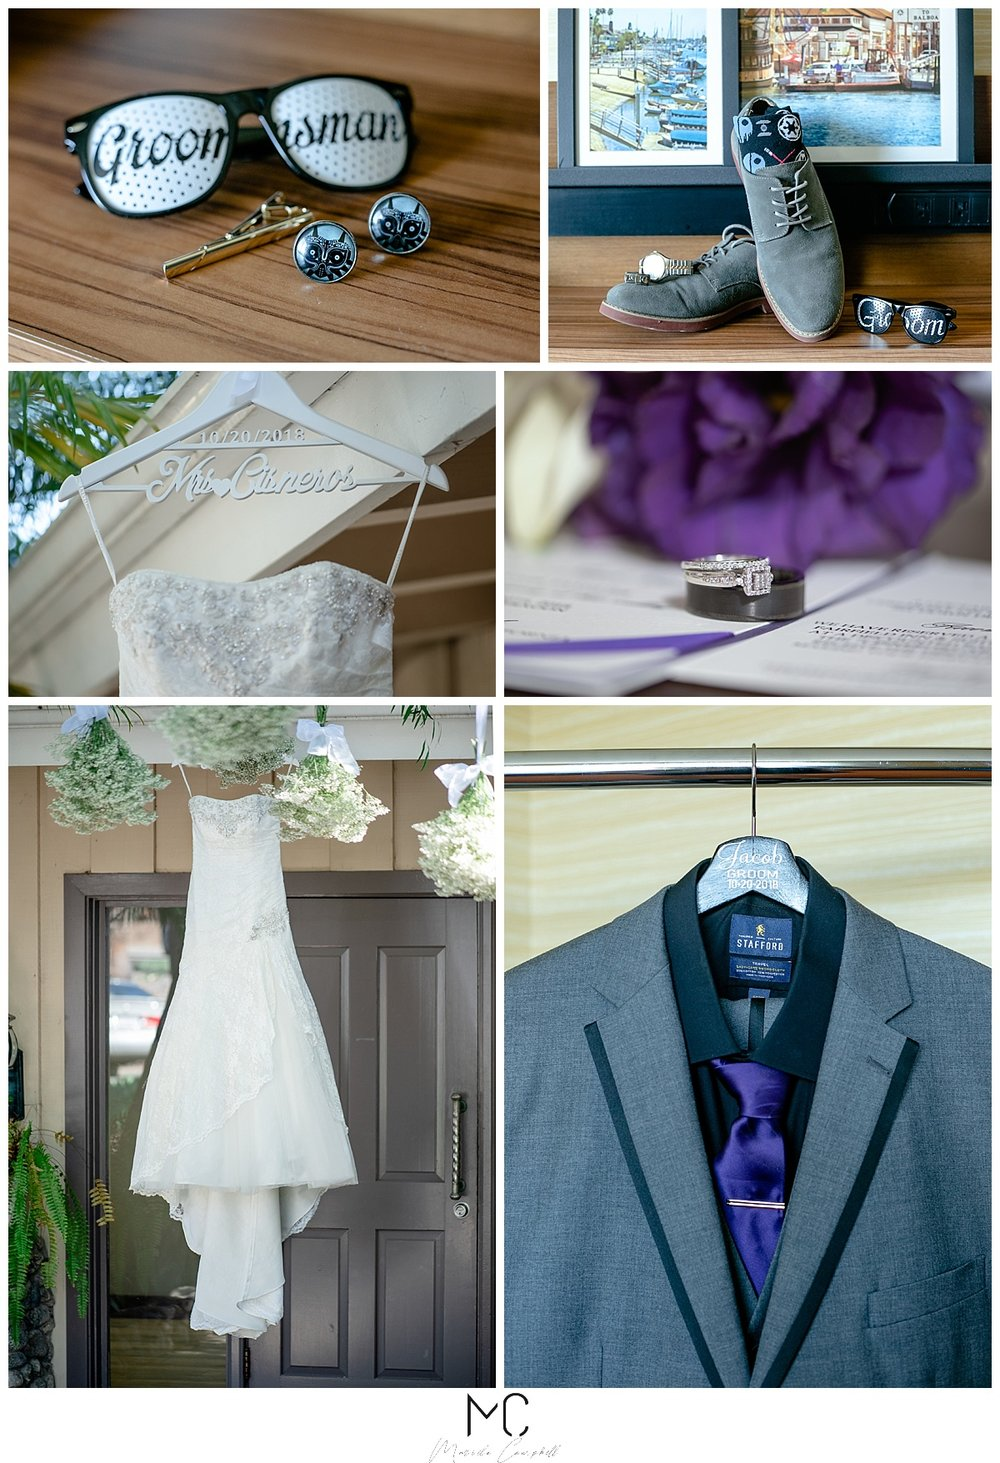 Preparations and details - are some of my favorite things to capture - today's color is purple!!